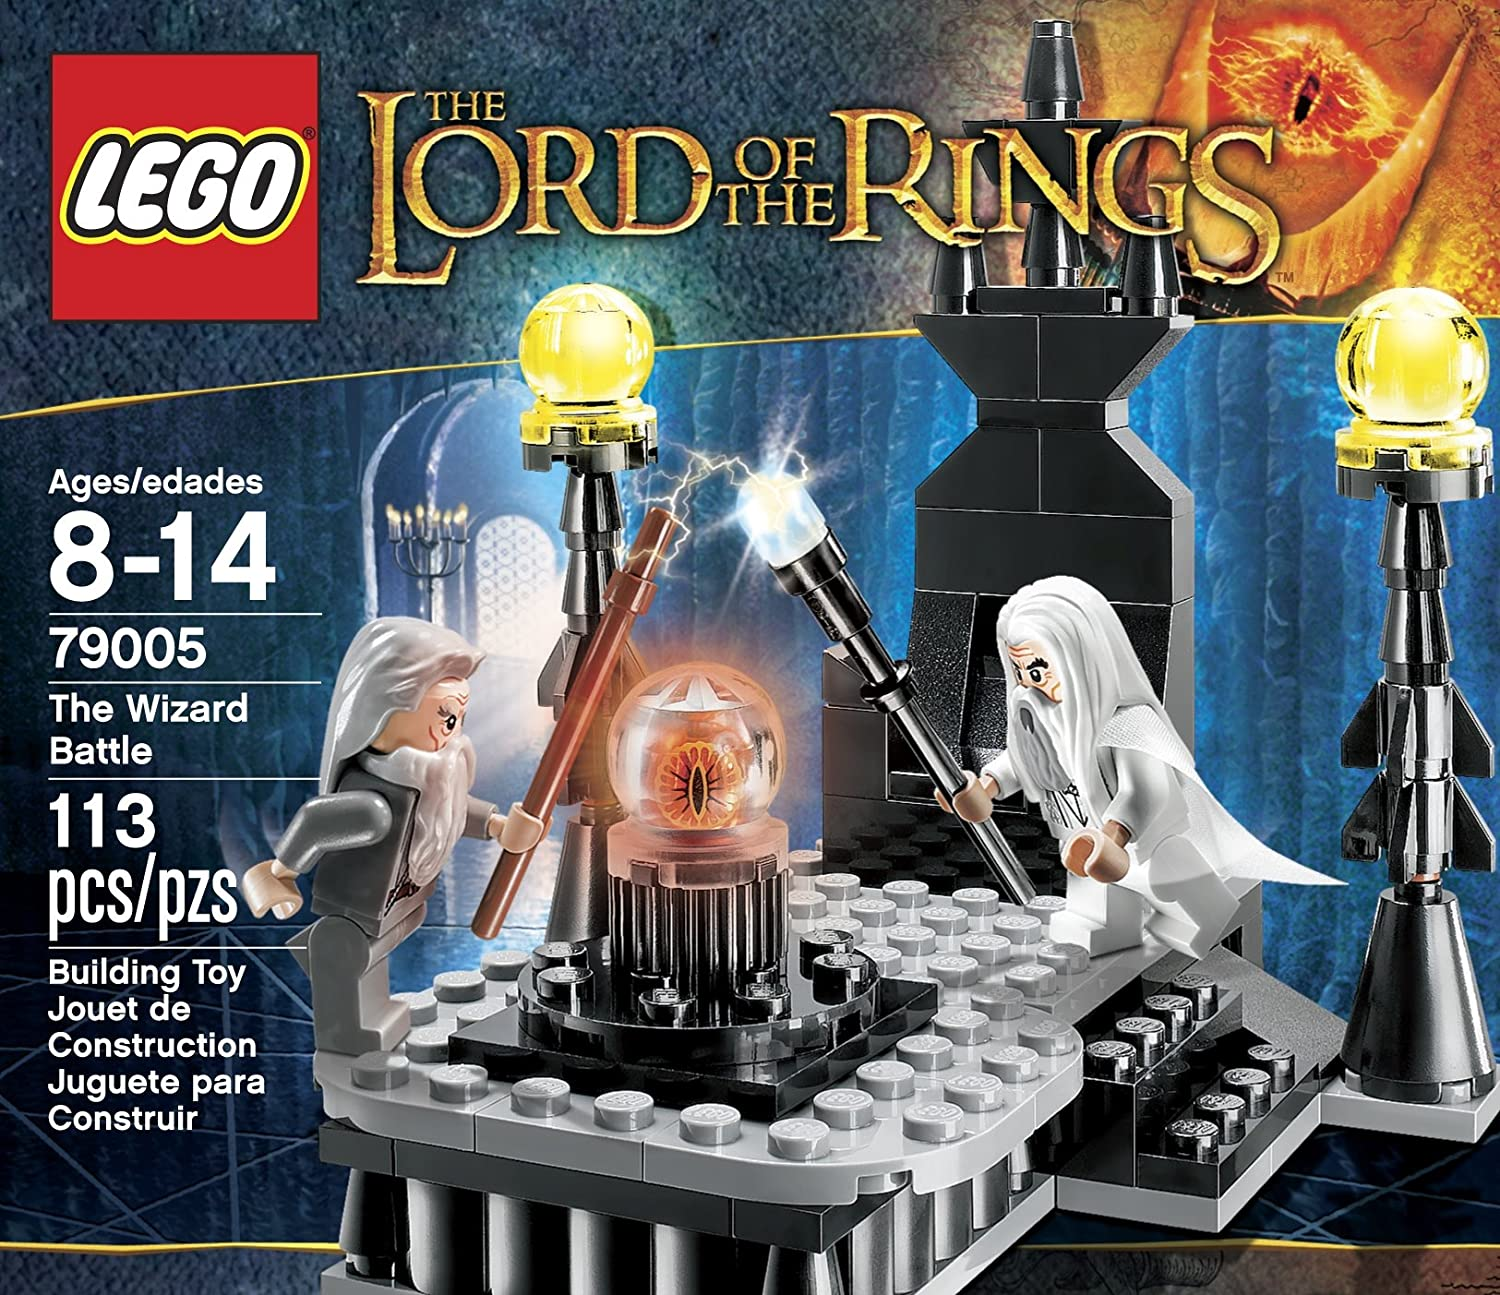 Amazon.com: LEGO Lord Of The Rings 79005 The Wizard Battle: Toys & Games